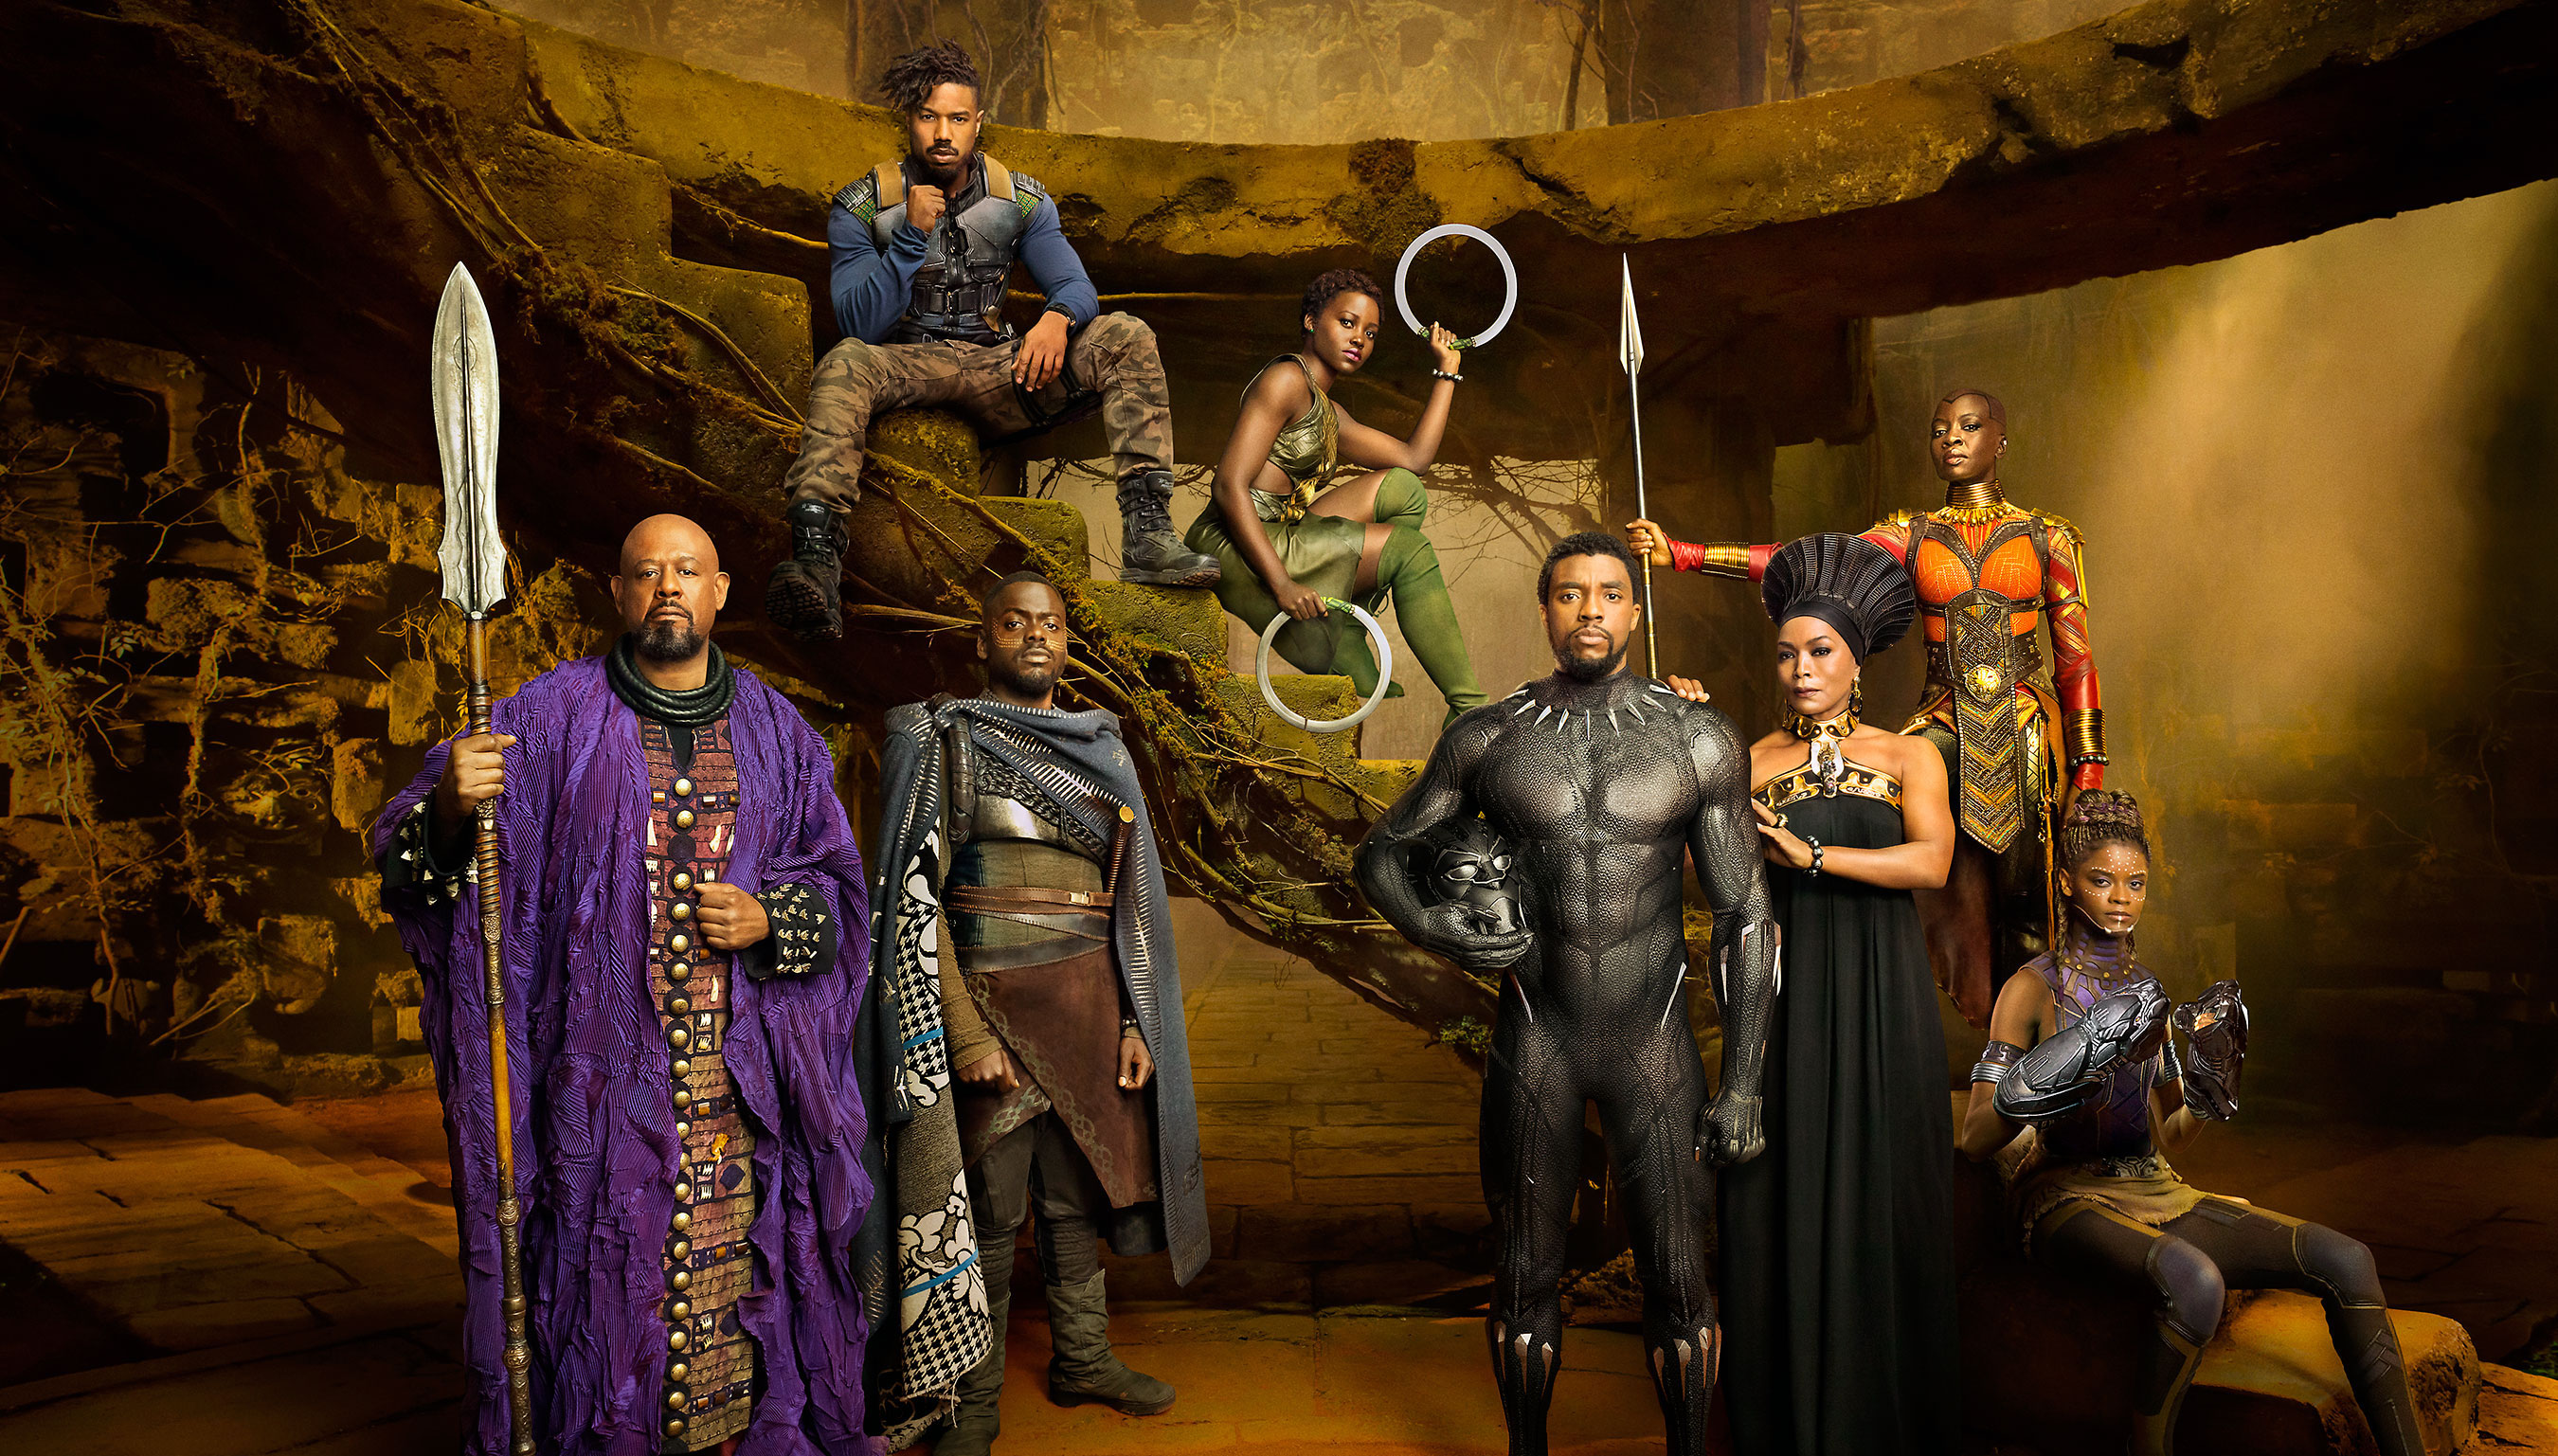 Black Panther has been wonderfully cast